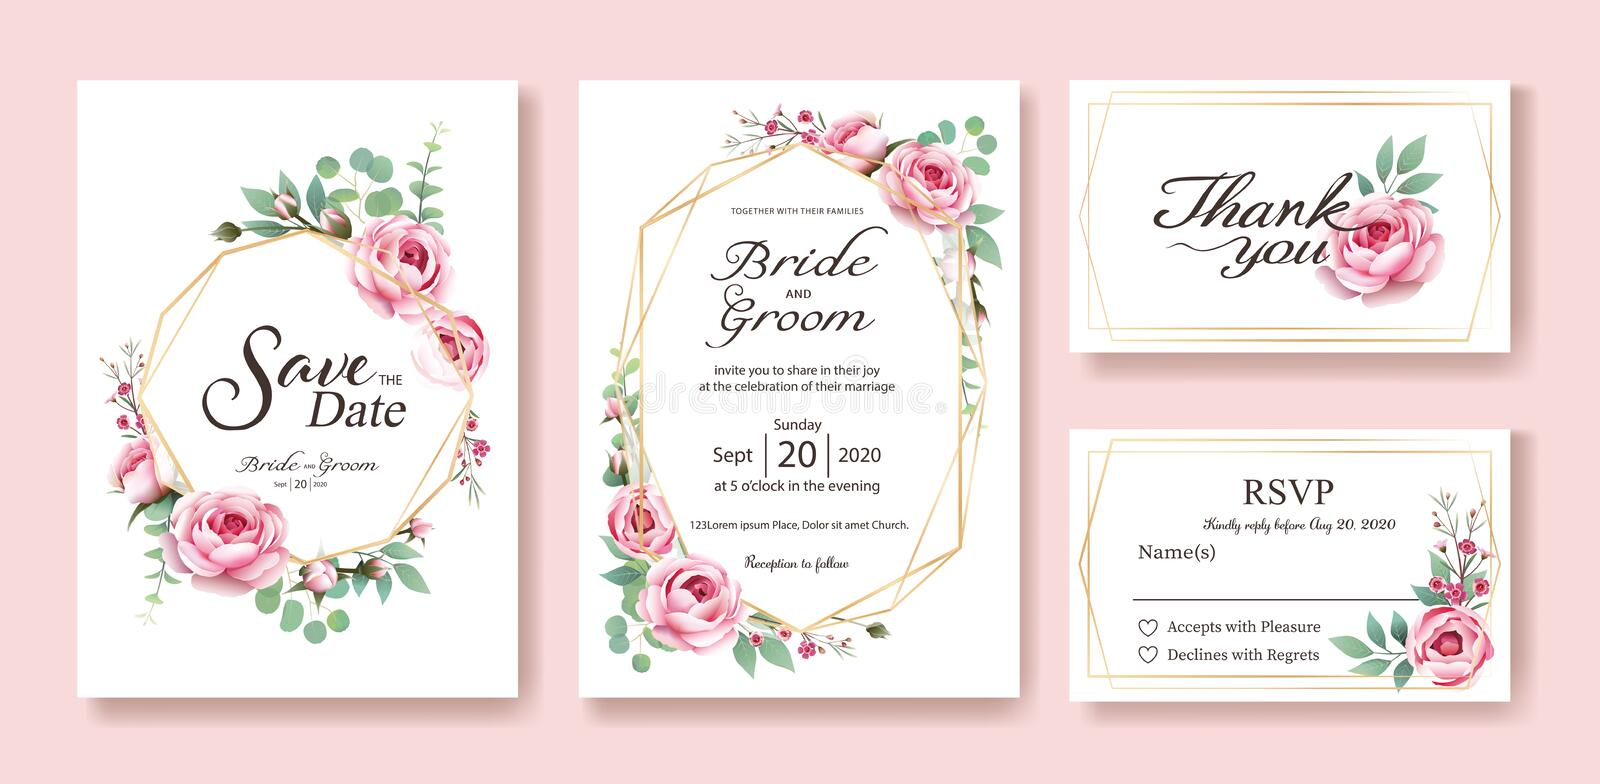 Floral wedding Invitation, save the date, thank you, rsvp card Design template. Vector. Queen of Sweden rose, silver dollar, leave. S, Wax flower. vector vector illustration